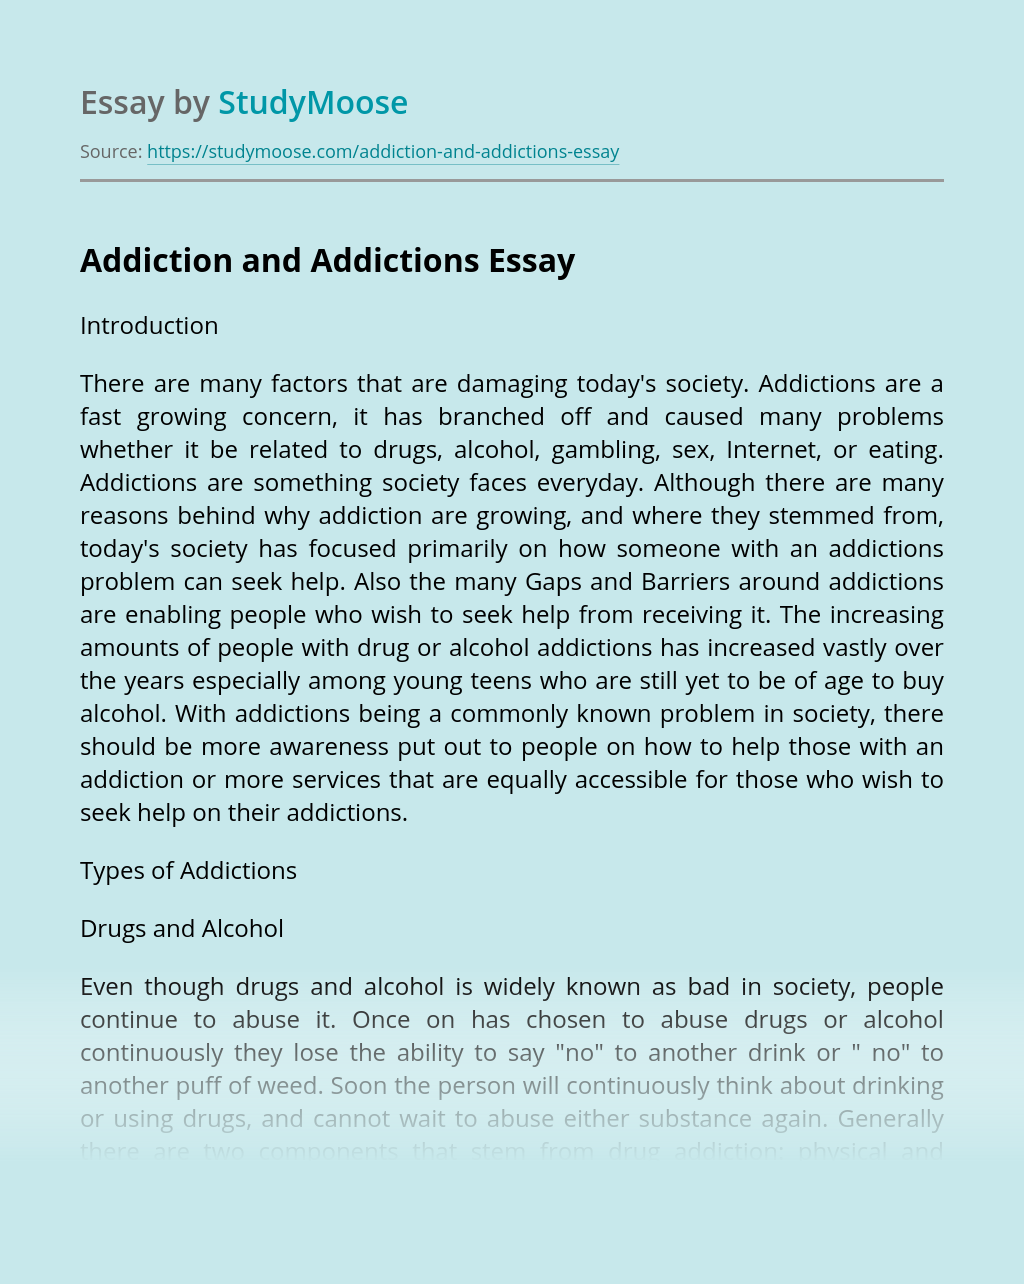 Addiction and Addictions